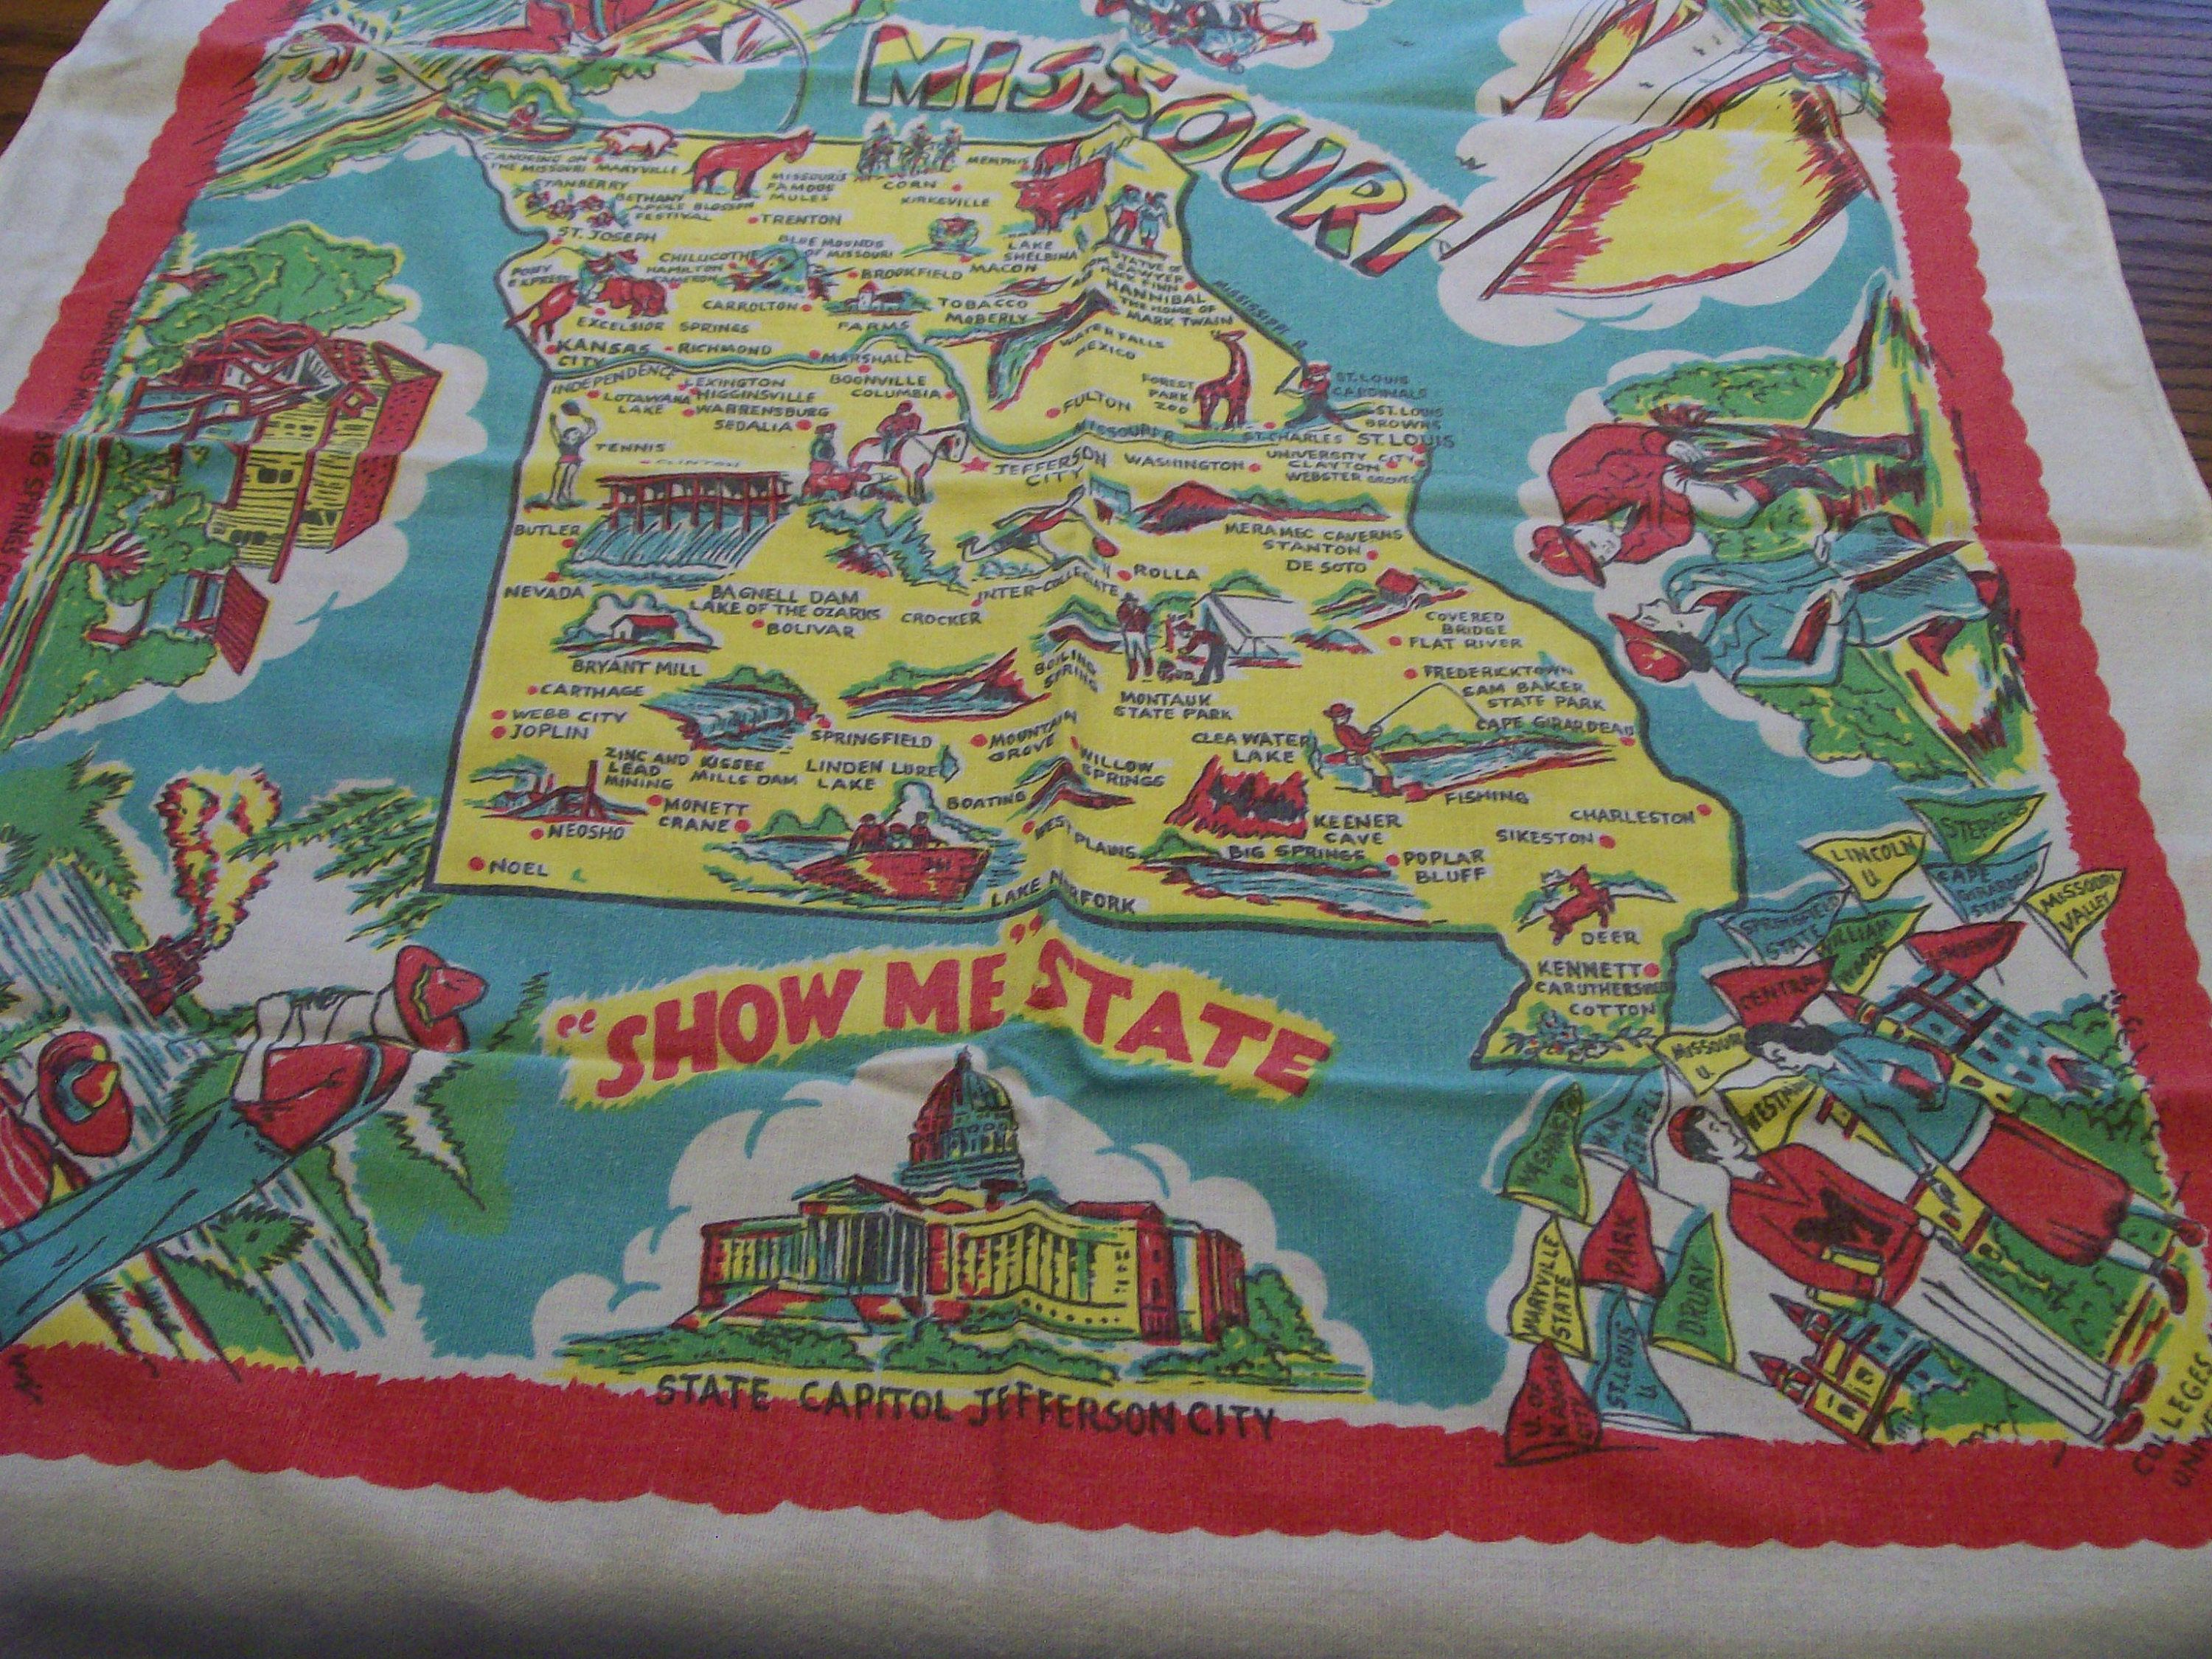 Map Of Oregon State Fairgrounds%0A Vintage Missouri Souvenir Tablecloth Map of State with Attractions   Show Me  State   Mid Century Table Topper State Capitol Mark Twain Region